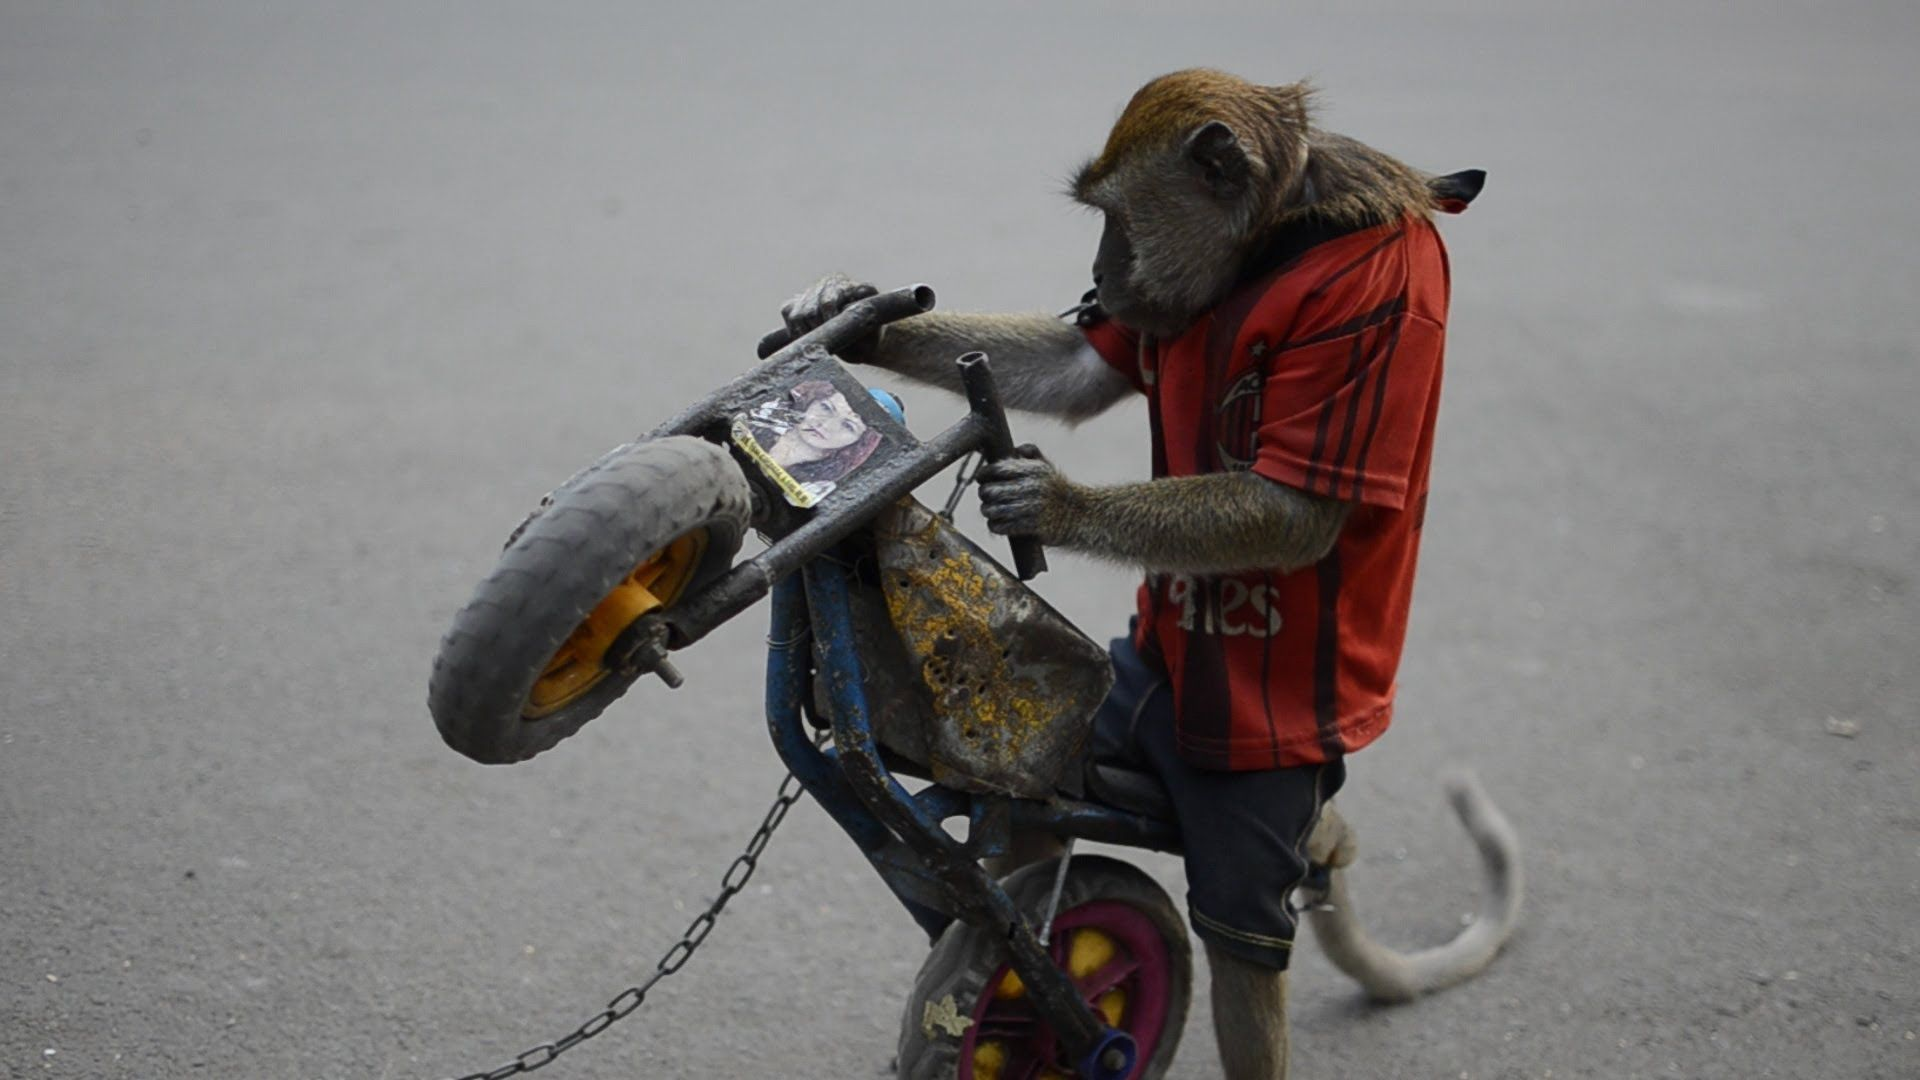 Monkey Riding Toy Motorcycle In Jakarta Indonesia Ride On Toys